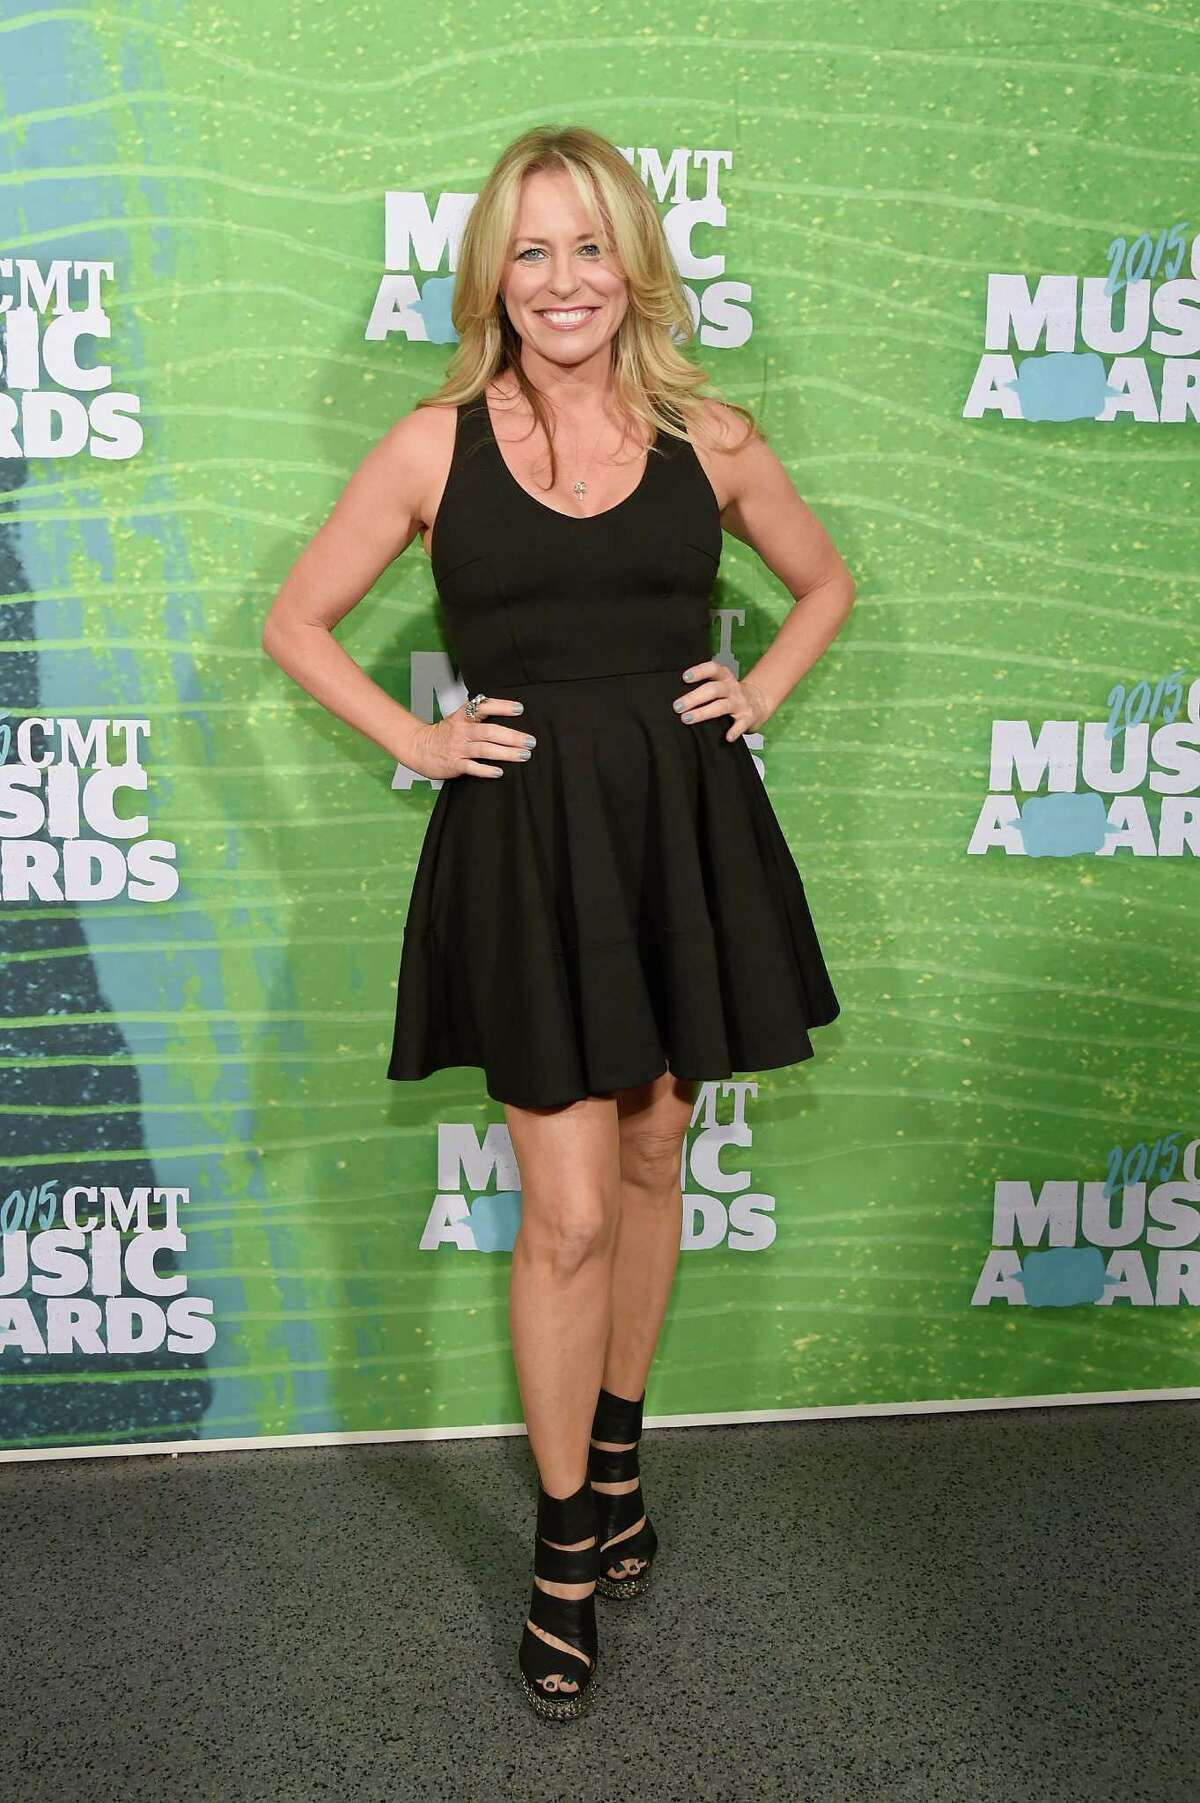 NASHVILLE, TN - JUNE 10: Deana Carter attends the 2015 CMT Music awards at the Bridgestone Arena on June 10, 2015 in Nashville, Tennessee.